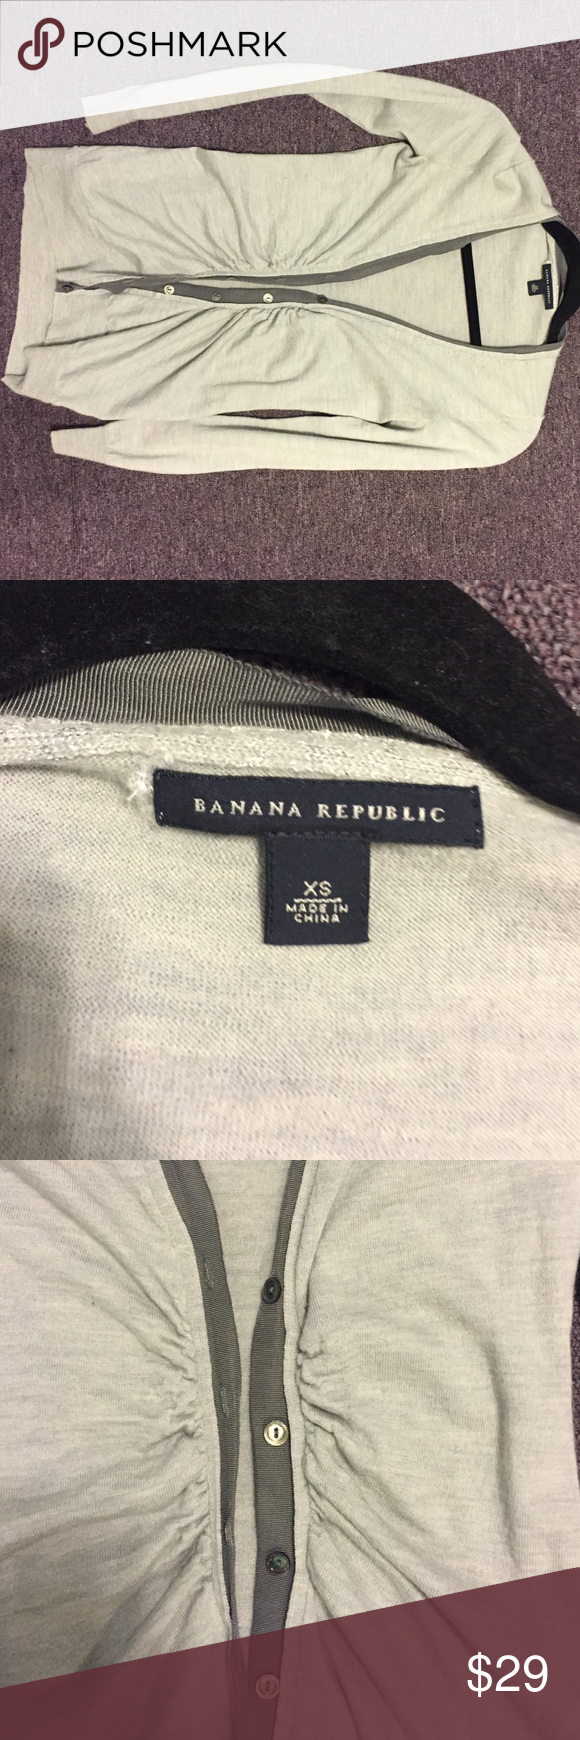 ✨ Banana republic cardigan size XS. reposhing. 🙅NO TRADE but I know some dumbo will ask any way lol. I rather keep if that. NO TRADE, might block you if you do. ✌🏻️happy poshing! Banana Republic Sweaters Cardigans